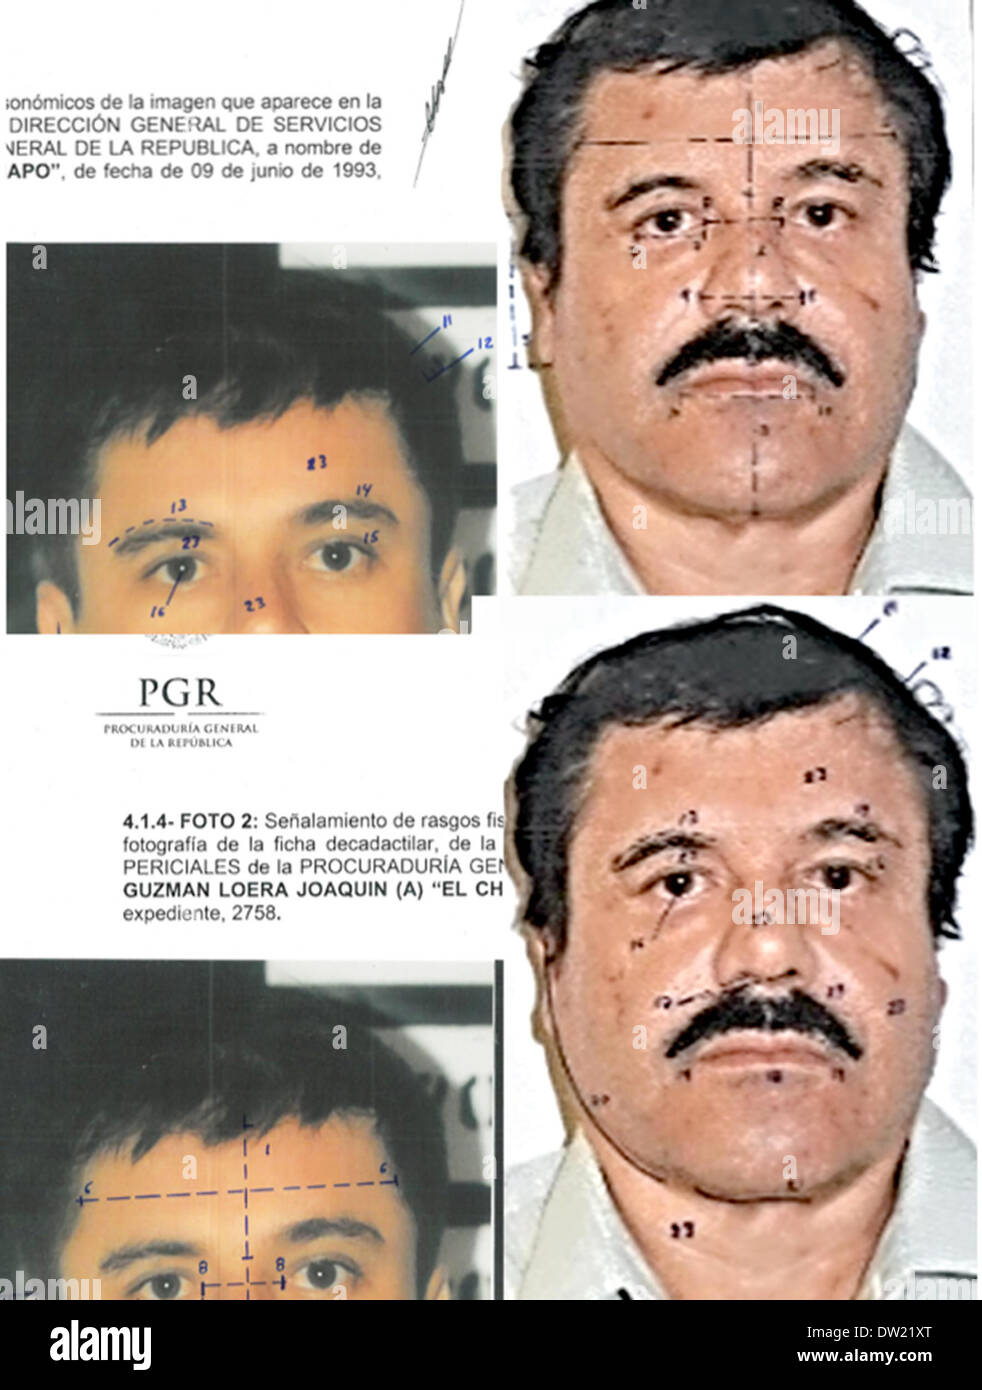 Mexico City. 25th Feb, 2014. This combo of photographs released by Mexico's Attorney General Office (PGR) with identification mapping marks made by the source to point out similarities in face measurements, shows Joaquin 'El Chapo' Guzman, using images made from his 1993 and 2014 detentions. The Sinaloa Cartel leader was subjected to a buccal swab, a phisiognomic identity study and a test of 10 fingerprints Credit:  Mexico's Attorney General Office/Xinhua/Alamy Live News - Stock Image